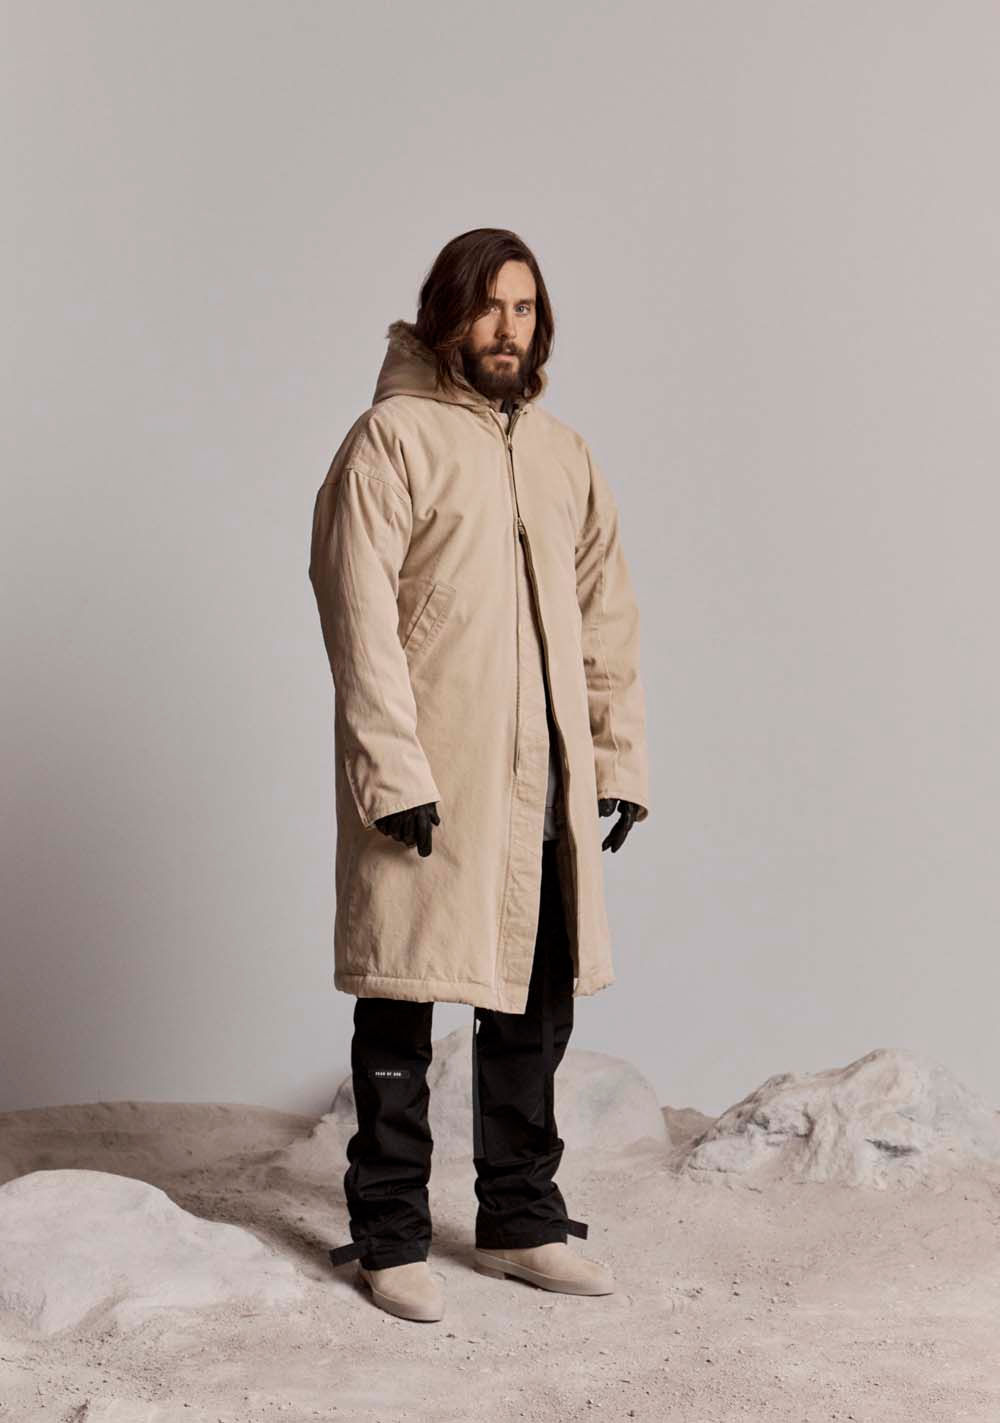 https_%2F%2Fhypebeast.com%2Fimage%2F2018%2F09%2Ffear-of-god-6-sixth-collection-jared-leto-nike-15.jpg